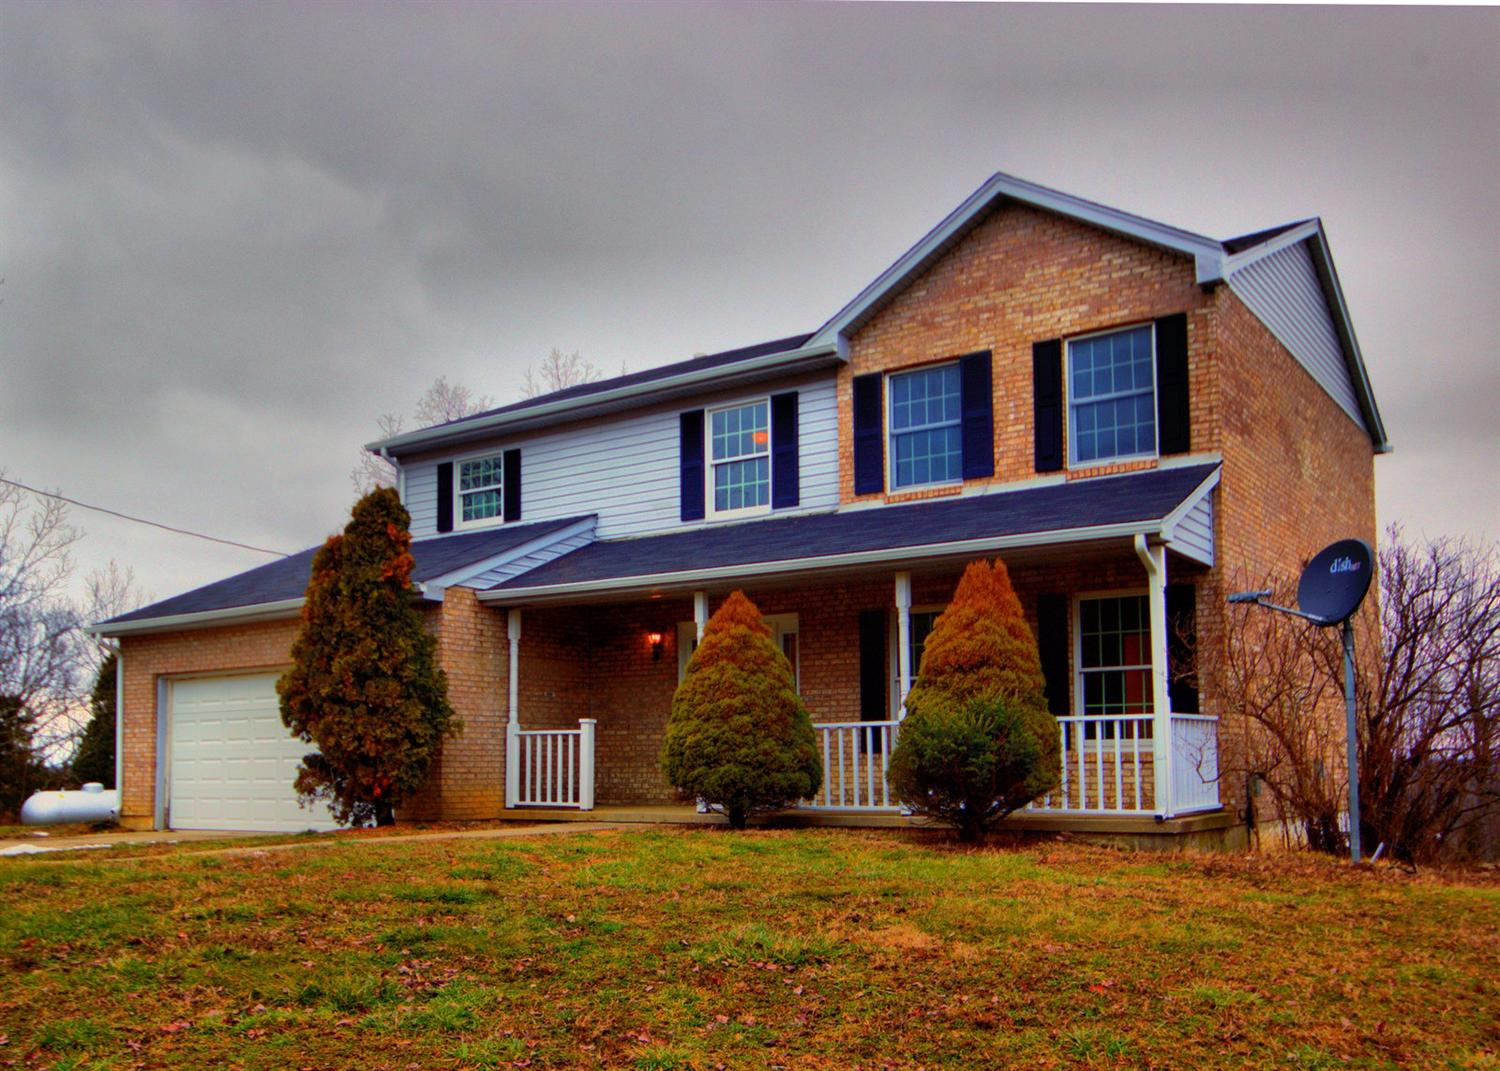 Image of Residential for Sale near Demossville, Kentucky, in Pendleton county: 13.60 acres